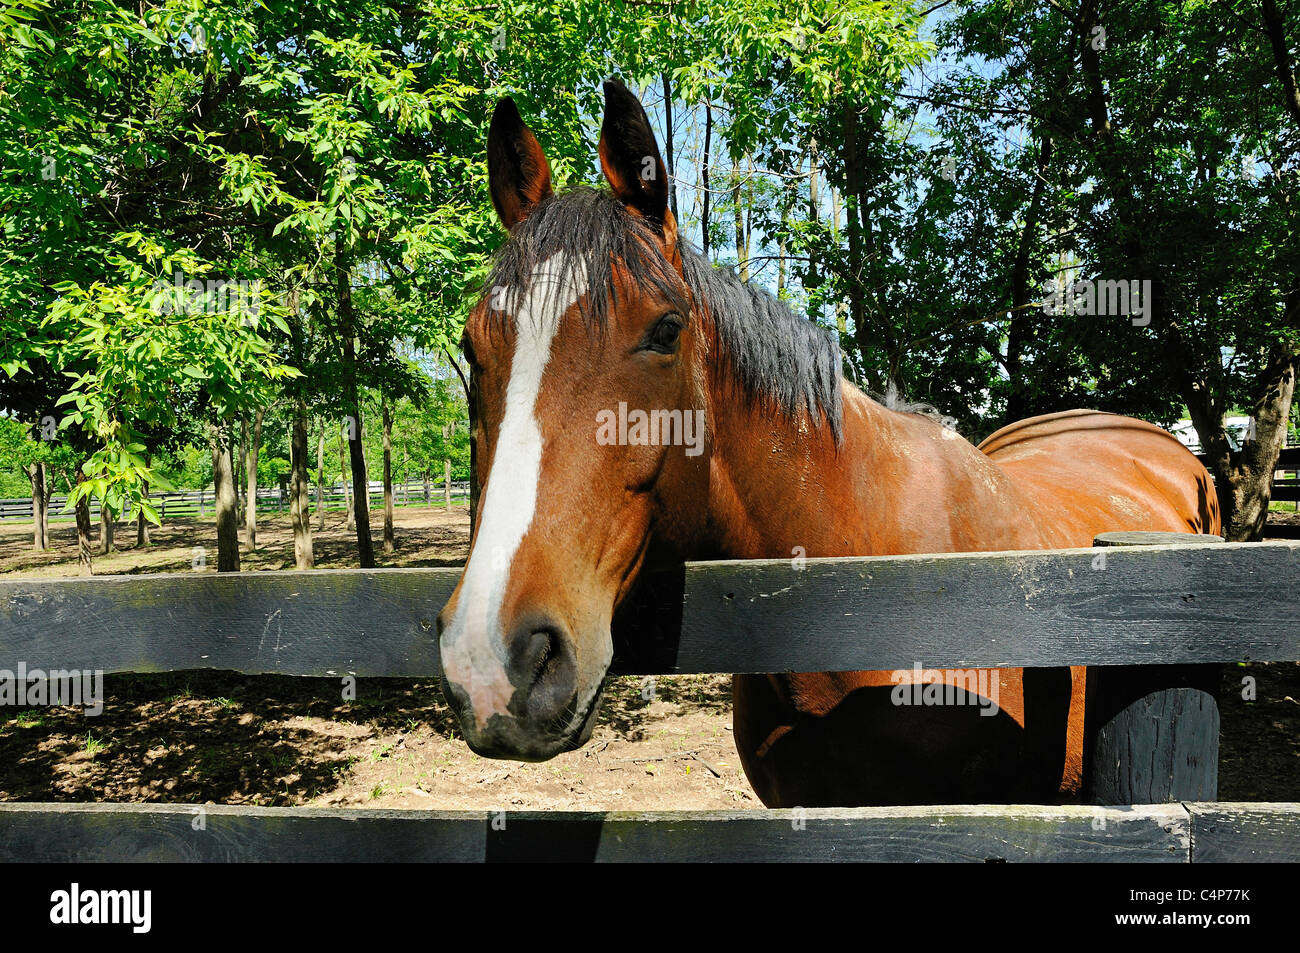 Handsome chestnut gelding looking over his corral fence with his ears alertly forward. - Stock Image